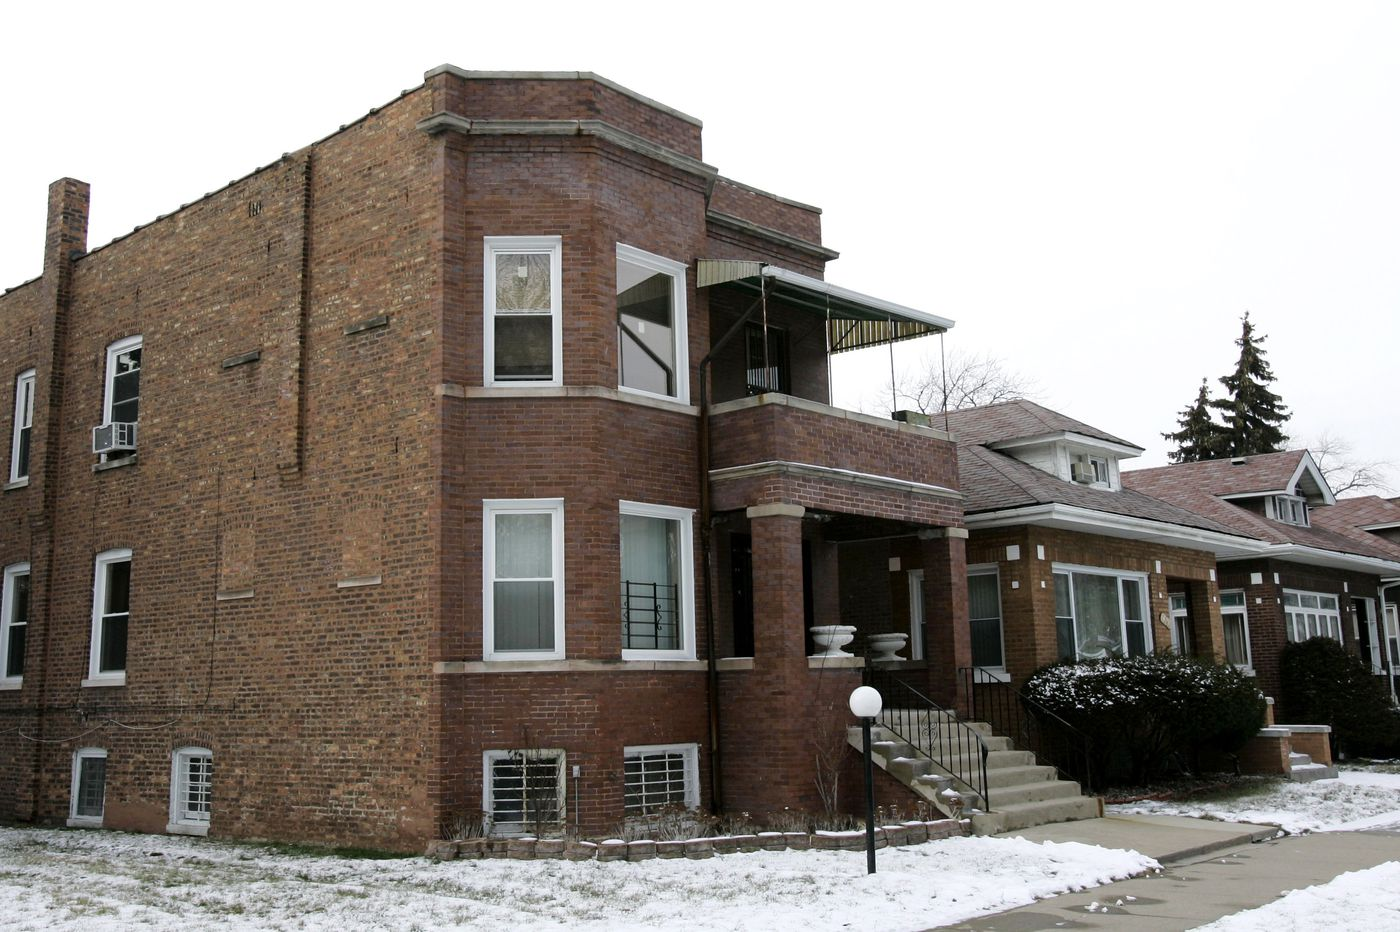 Al Capone family home in Chicago sells for $226,000 — double the asking price